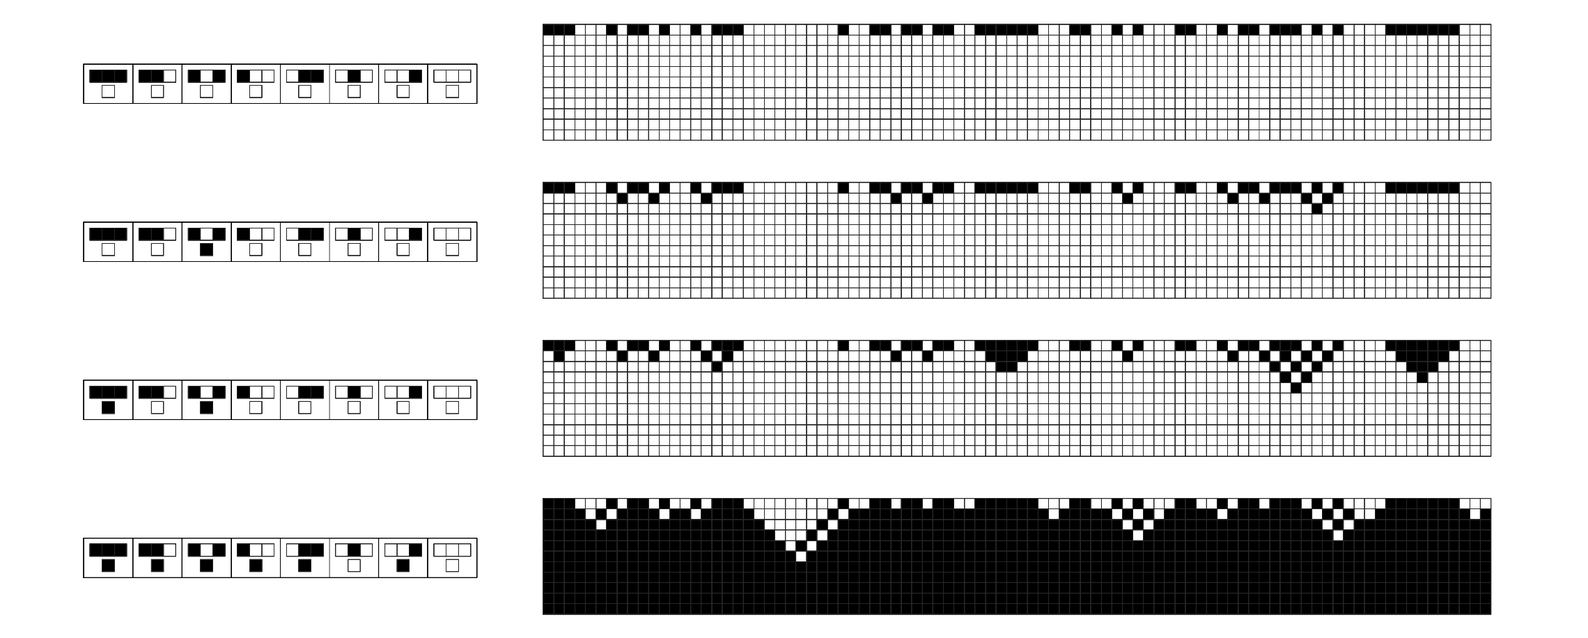 Examples of cellular automata in uniform states